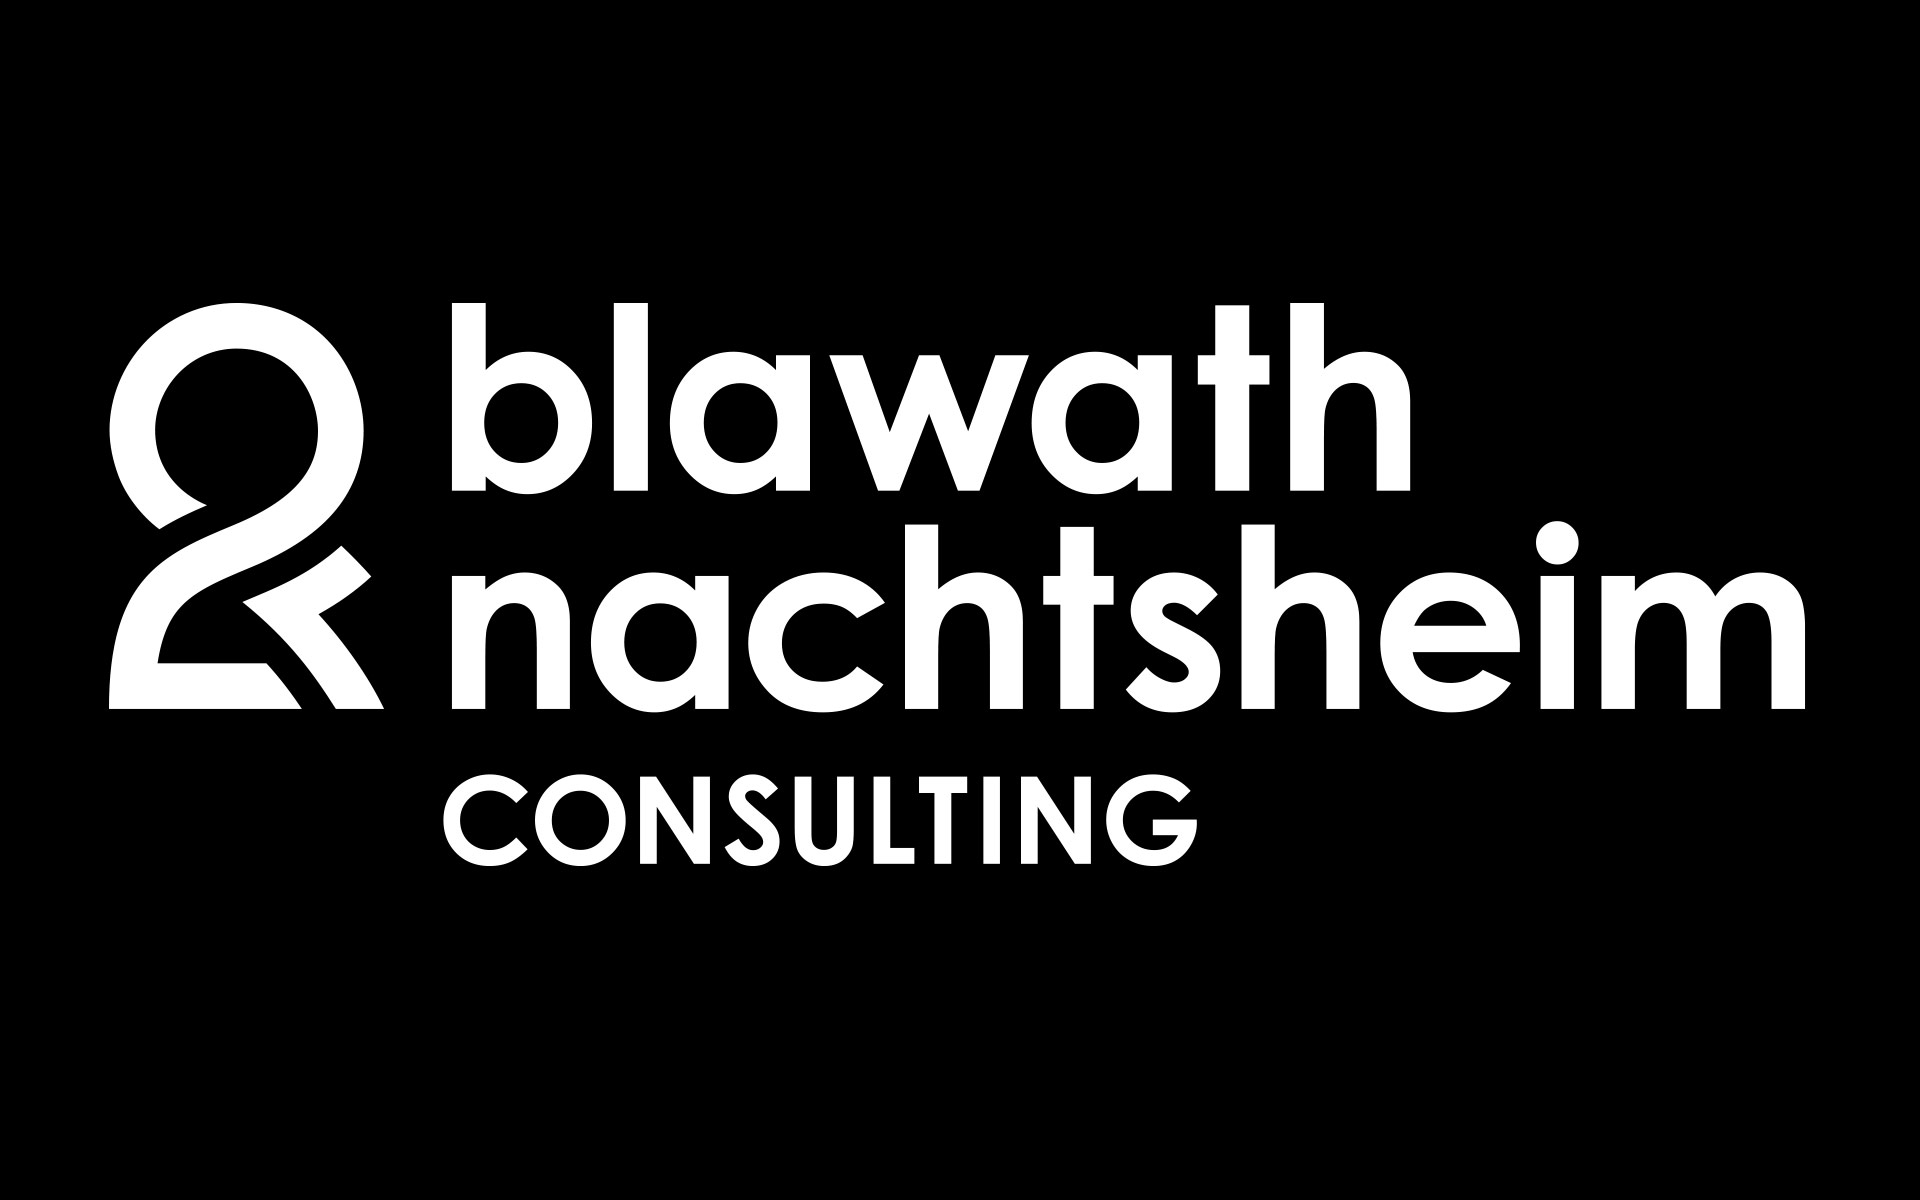 Blawath & Nachtsheim Consulting Corporate Design, Logotype